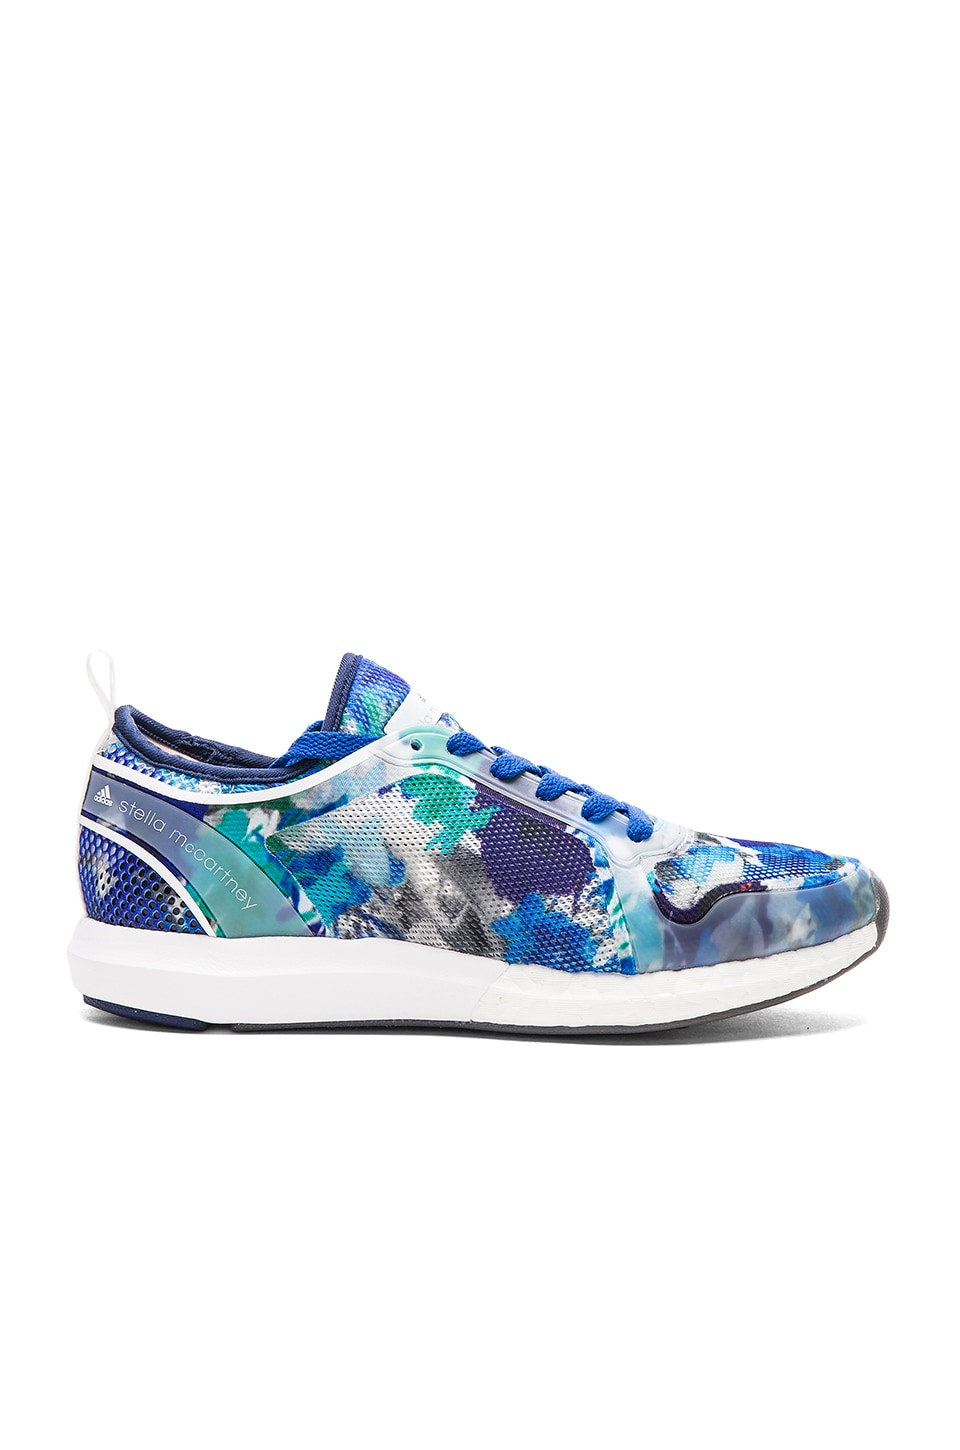 adidas by Stella McCartney CC Sonic Sneaker in Dark Blue, White & Granite